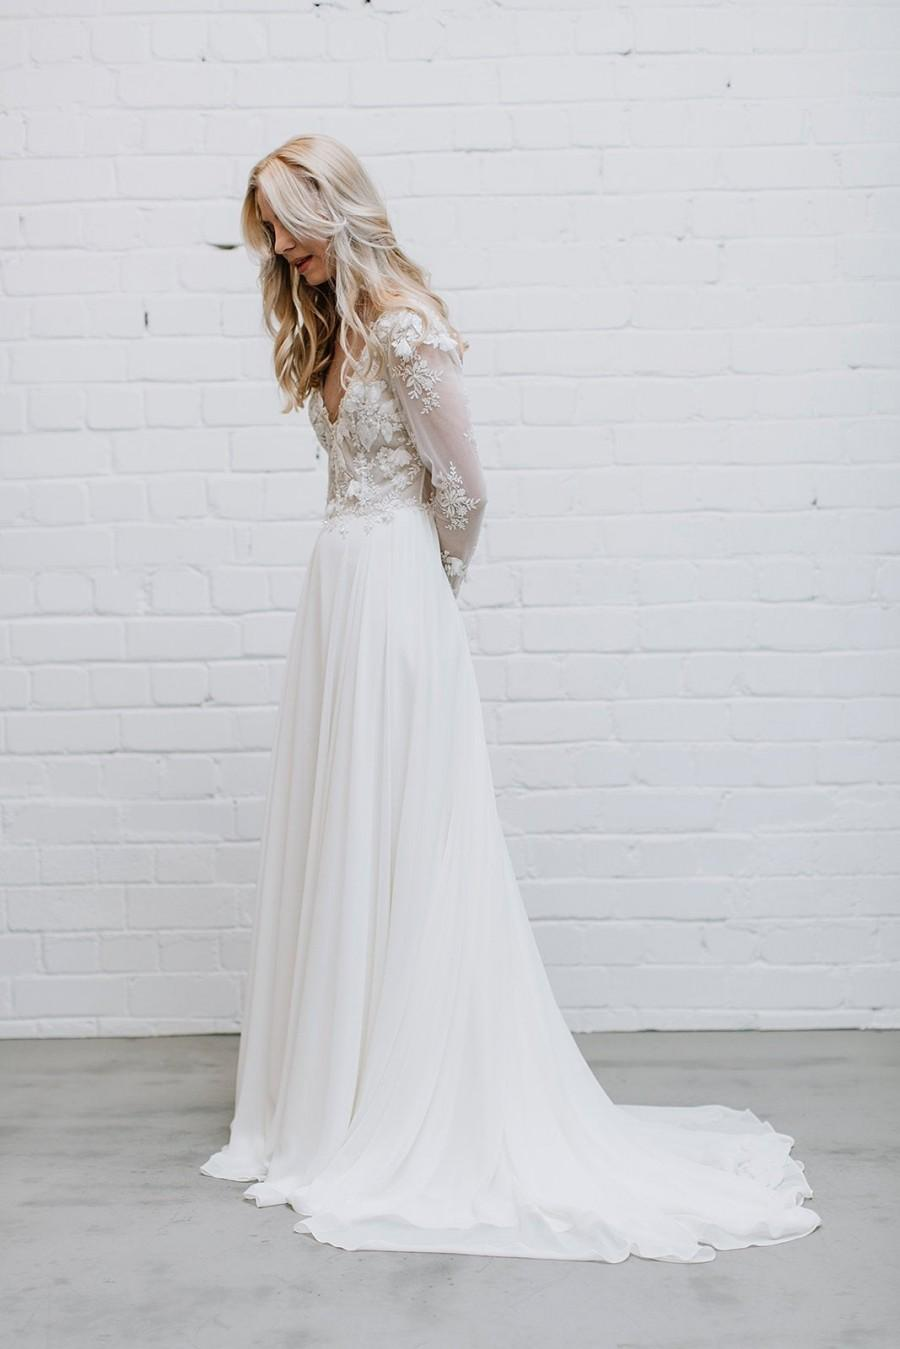 Hochzeit - CHARLOTTE - Ivory Lace Wedding Dress with Maxi Chiffon Skirt and Train,  Long Sleeve Wedding Dress with Open Back and Deep V Neckline